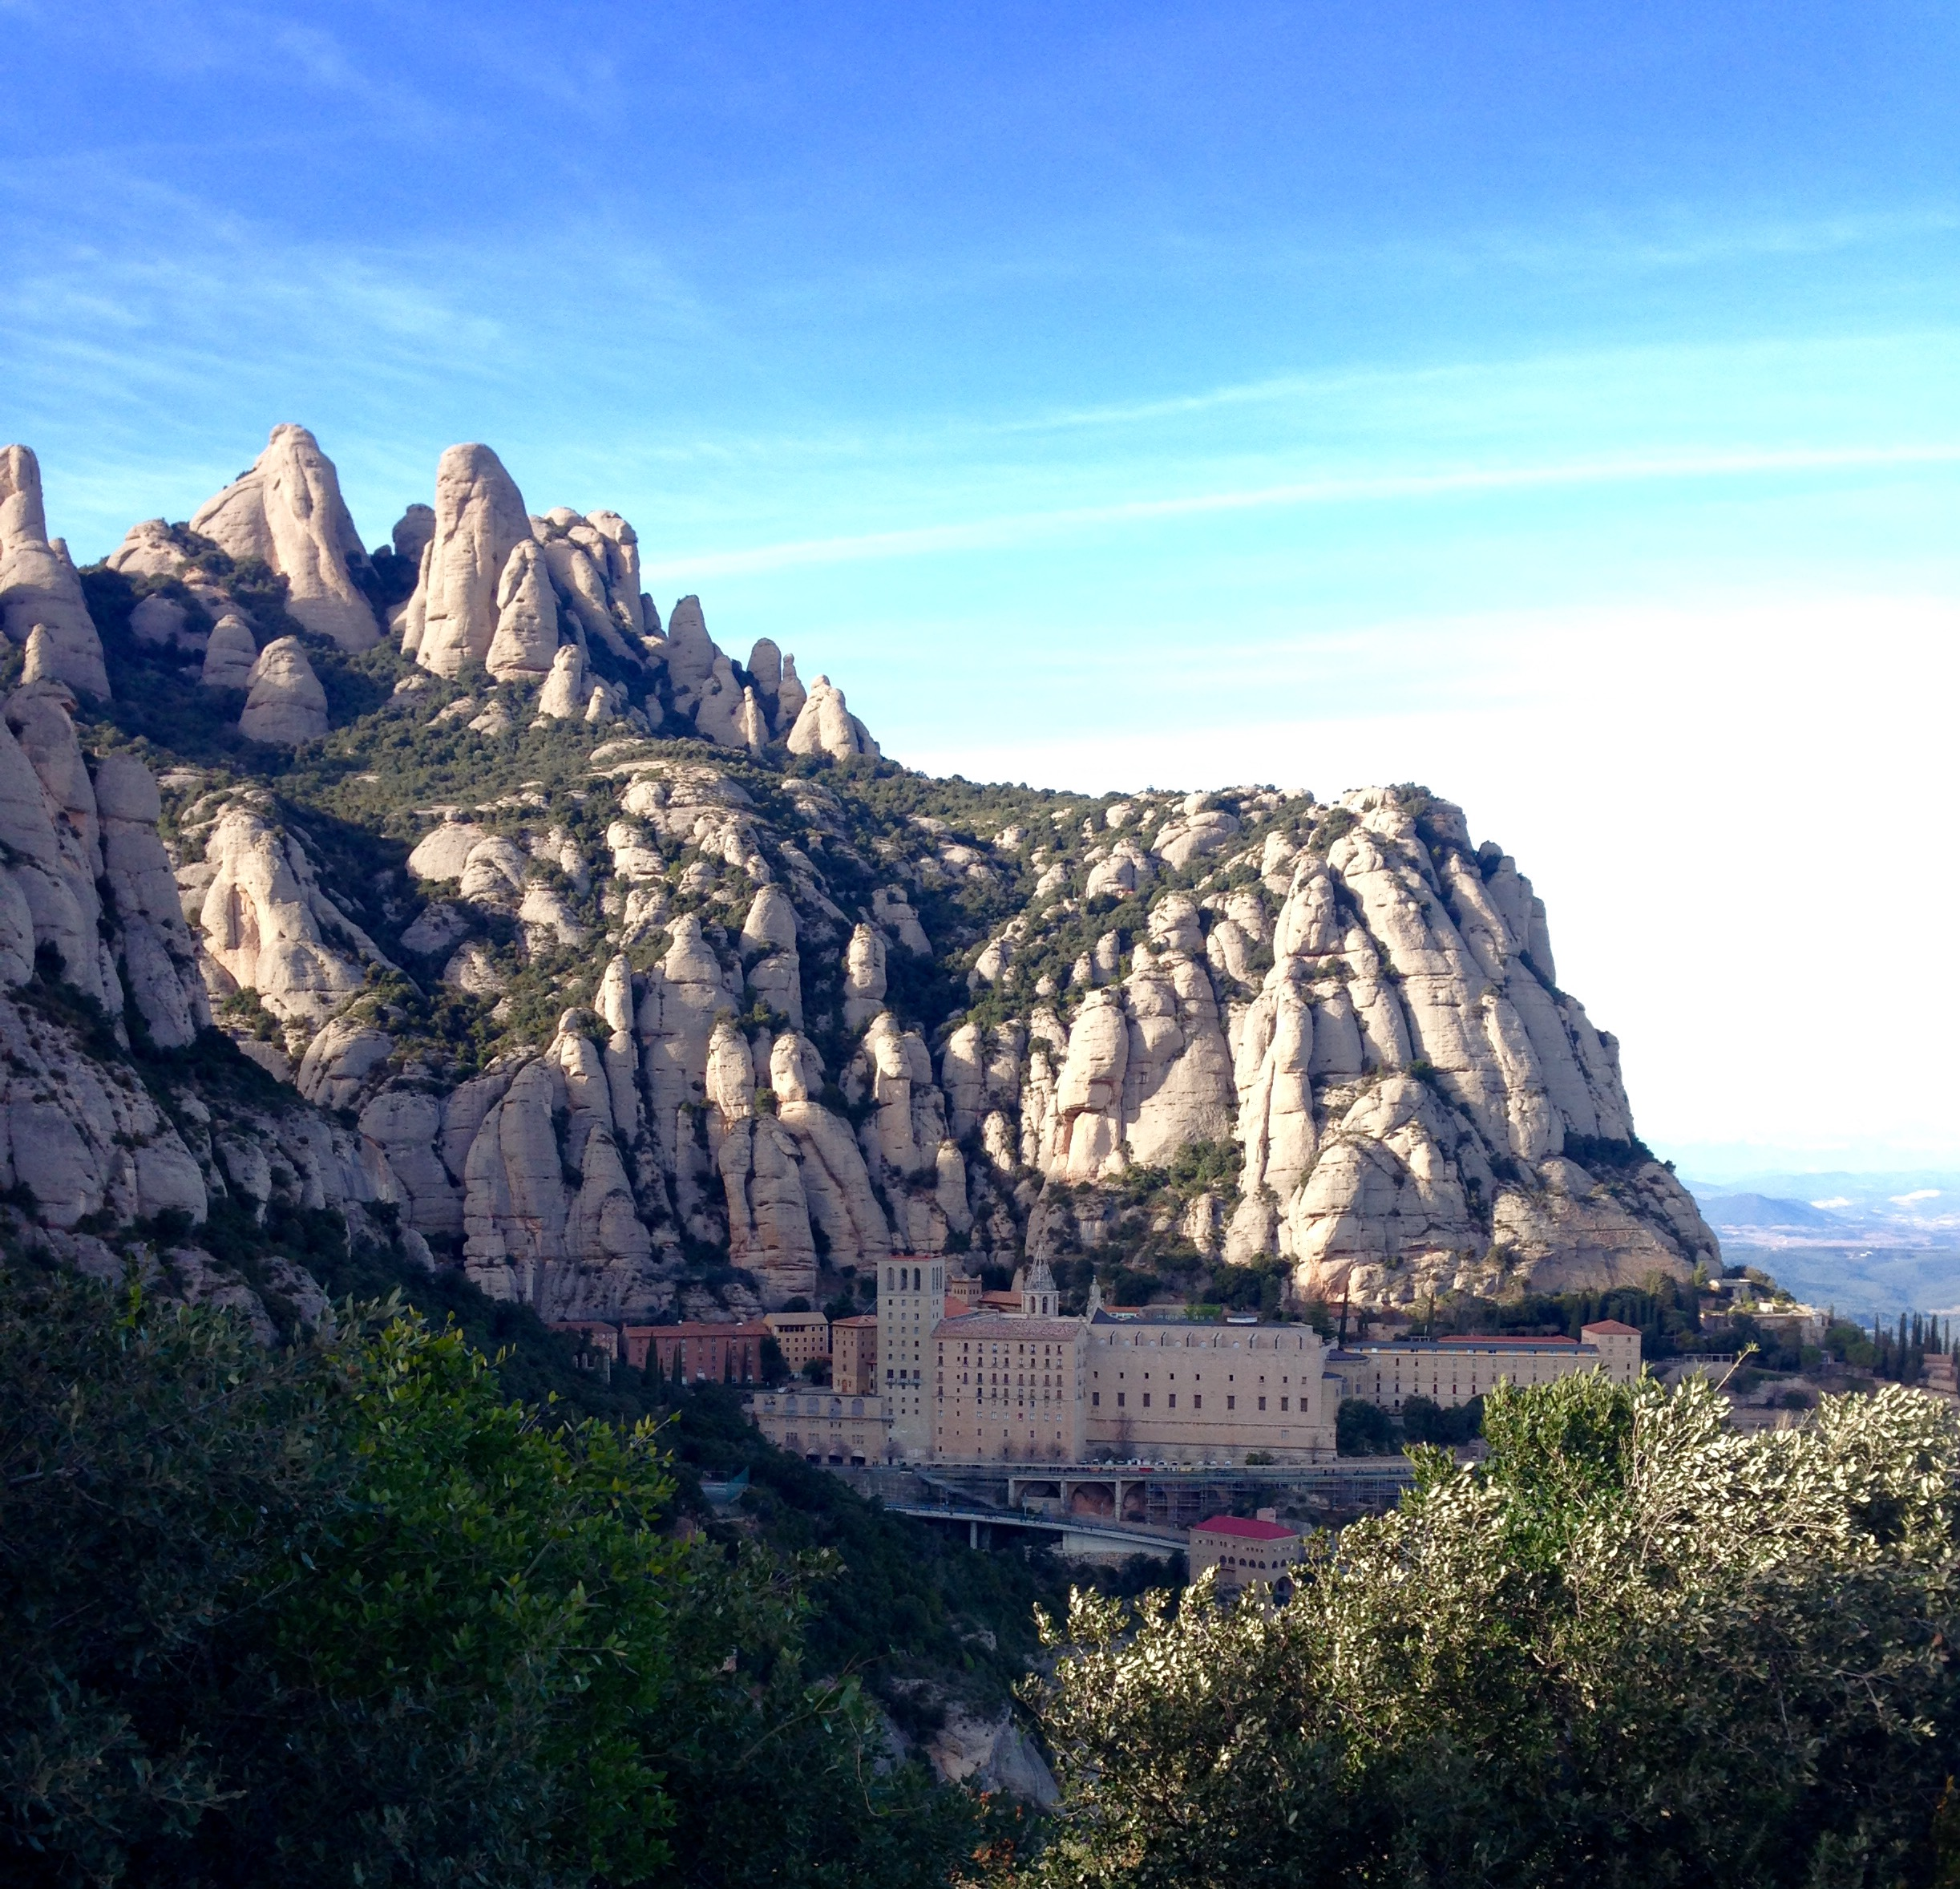 Montserrat from St. Michael's cross